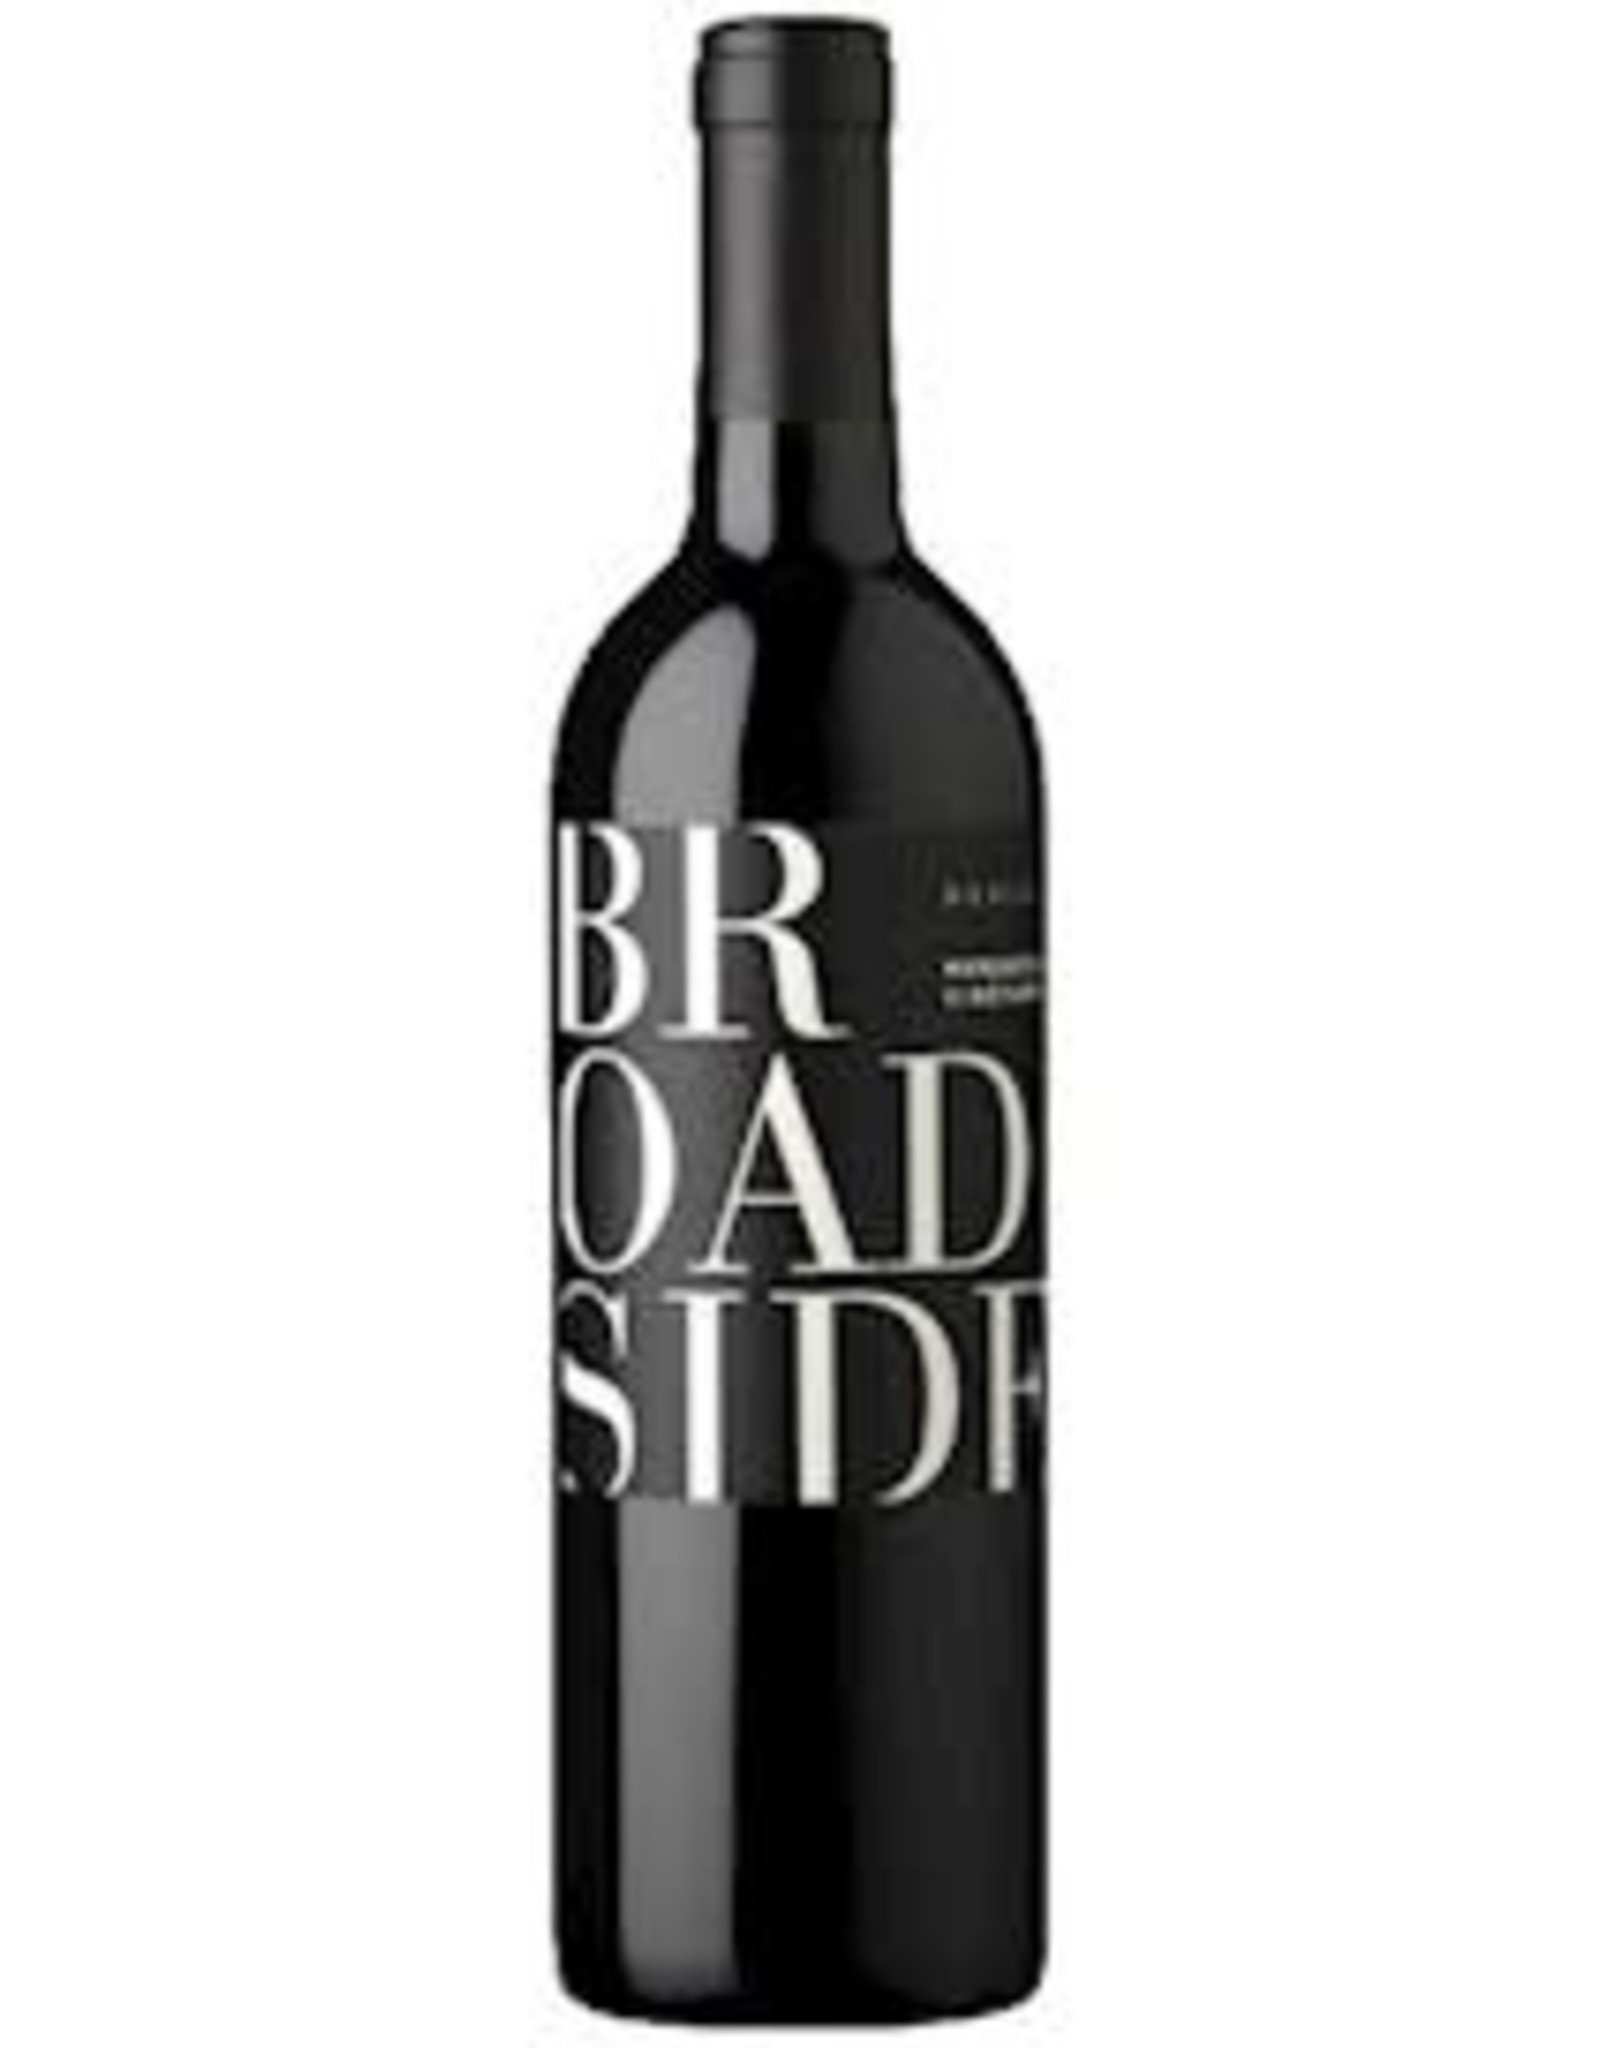 USA Broadside Margarita Vineyards Merlot